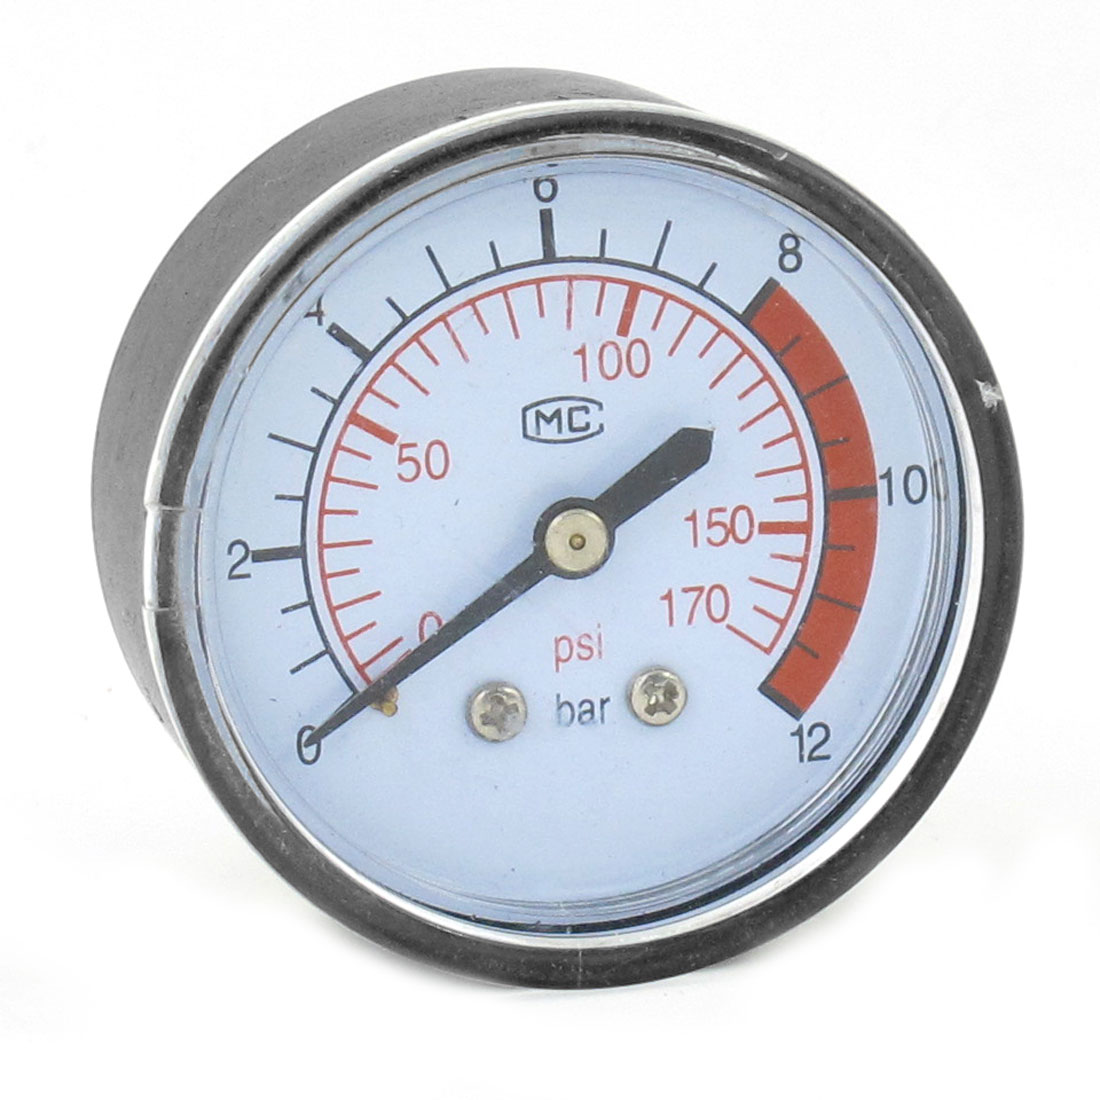 Black-Air-Compressor-Pressure-Gauge-1-4-PT-Brass-Thread-Dia-160-PSI